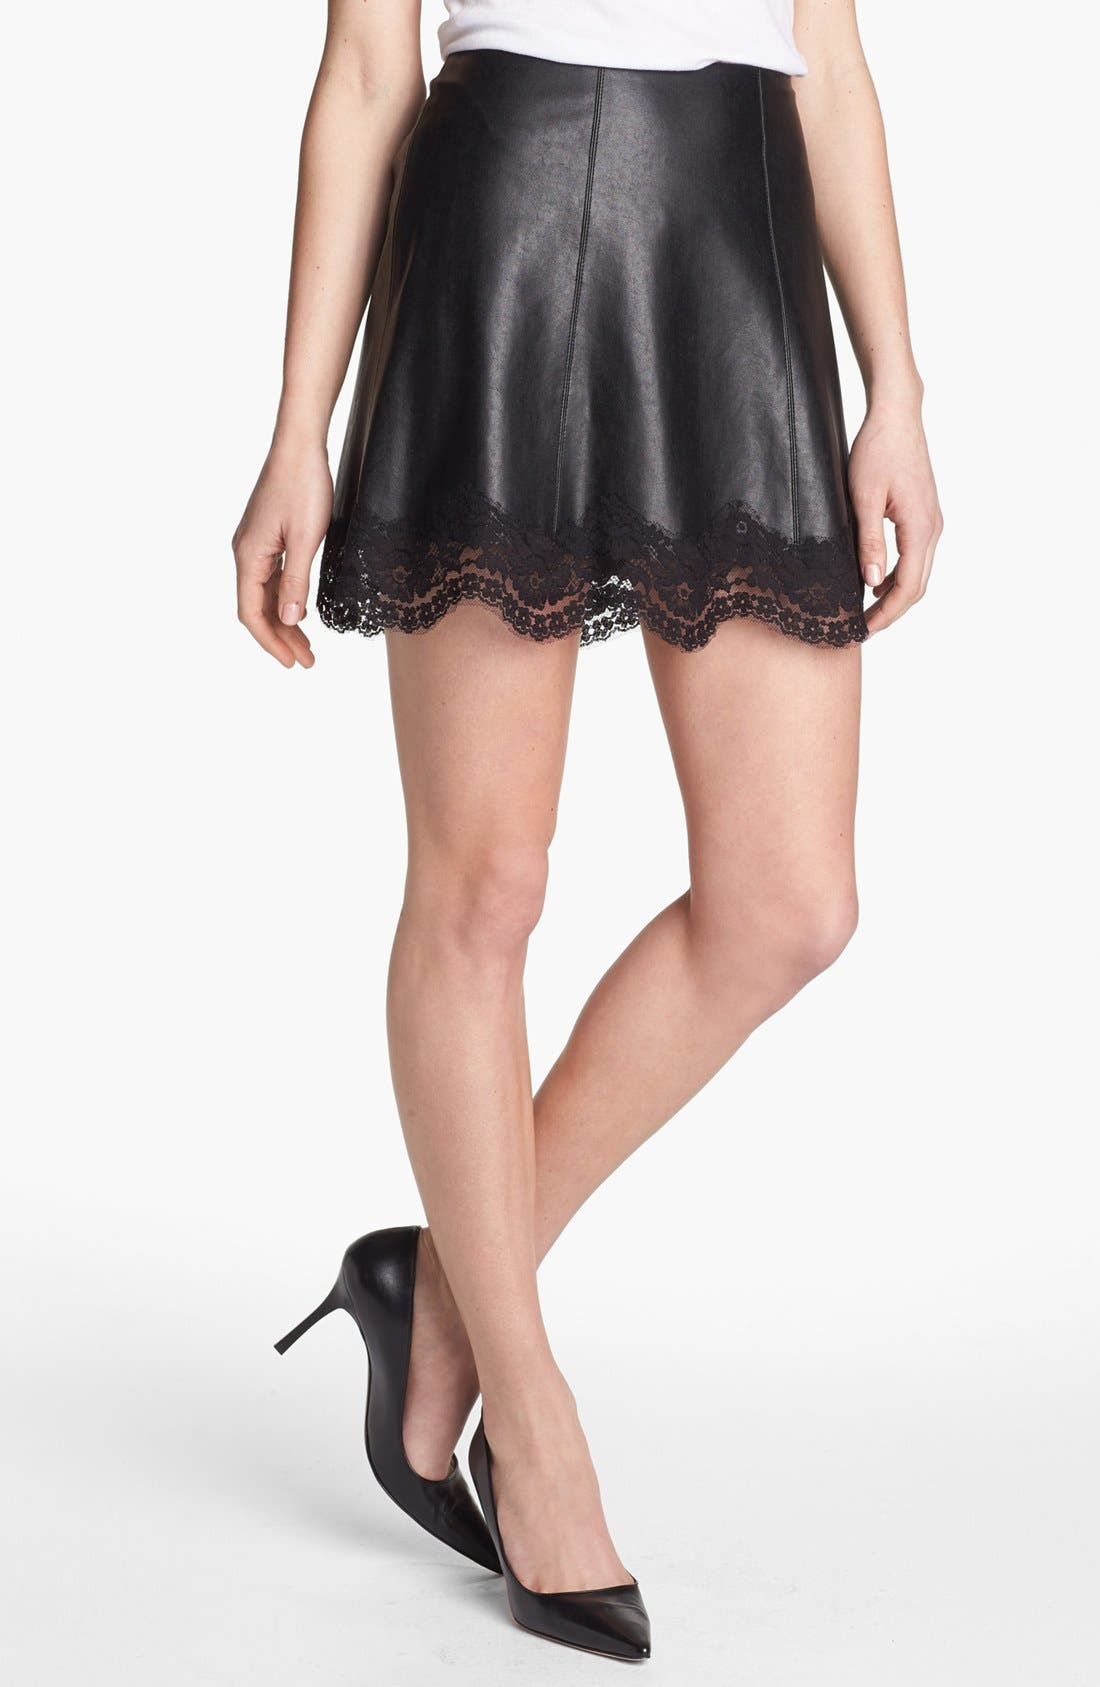 Alternate Image 1 Selected - Bailey 44 'Sangria' Faux Leather & Lace Trim Miniskirt